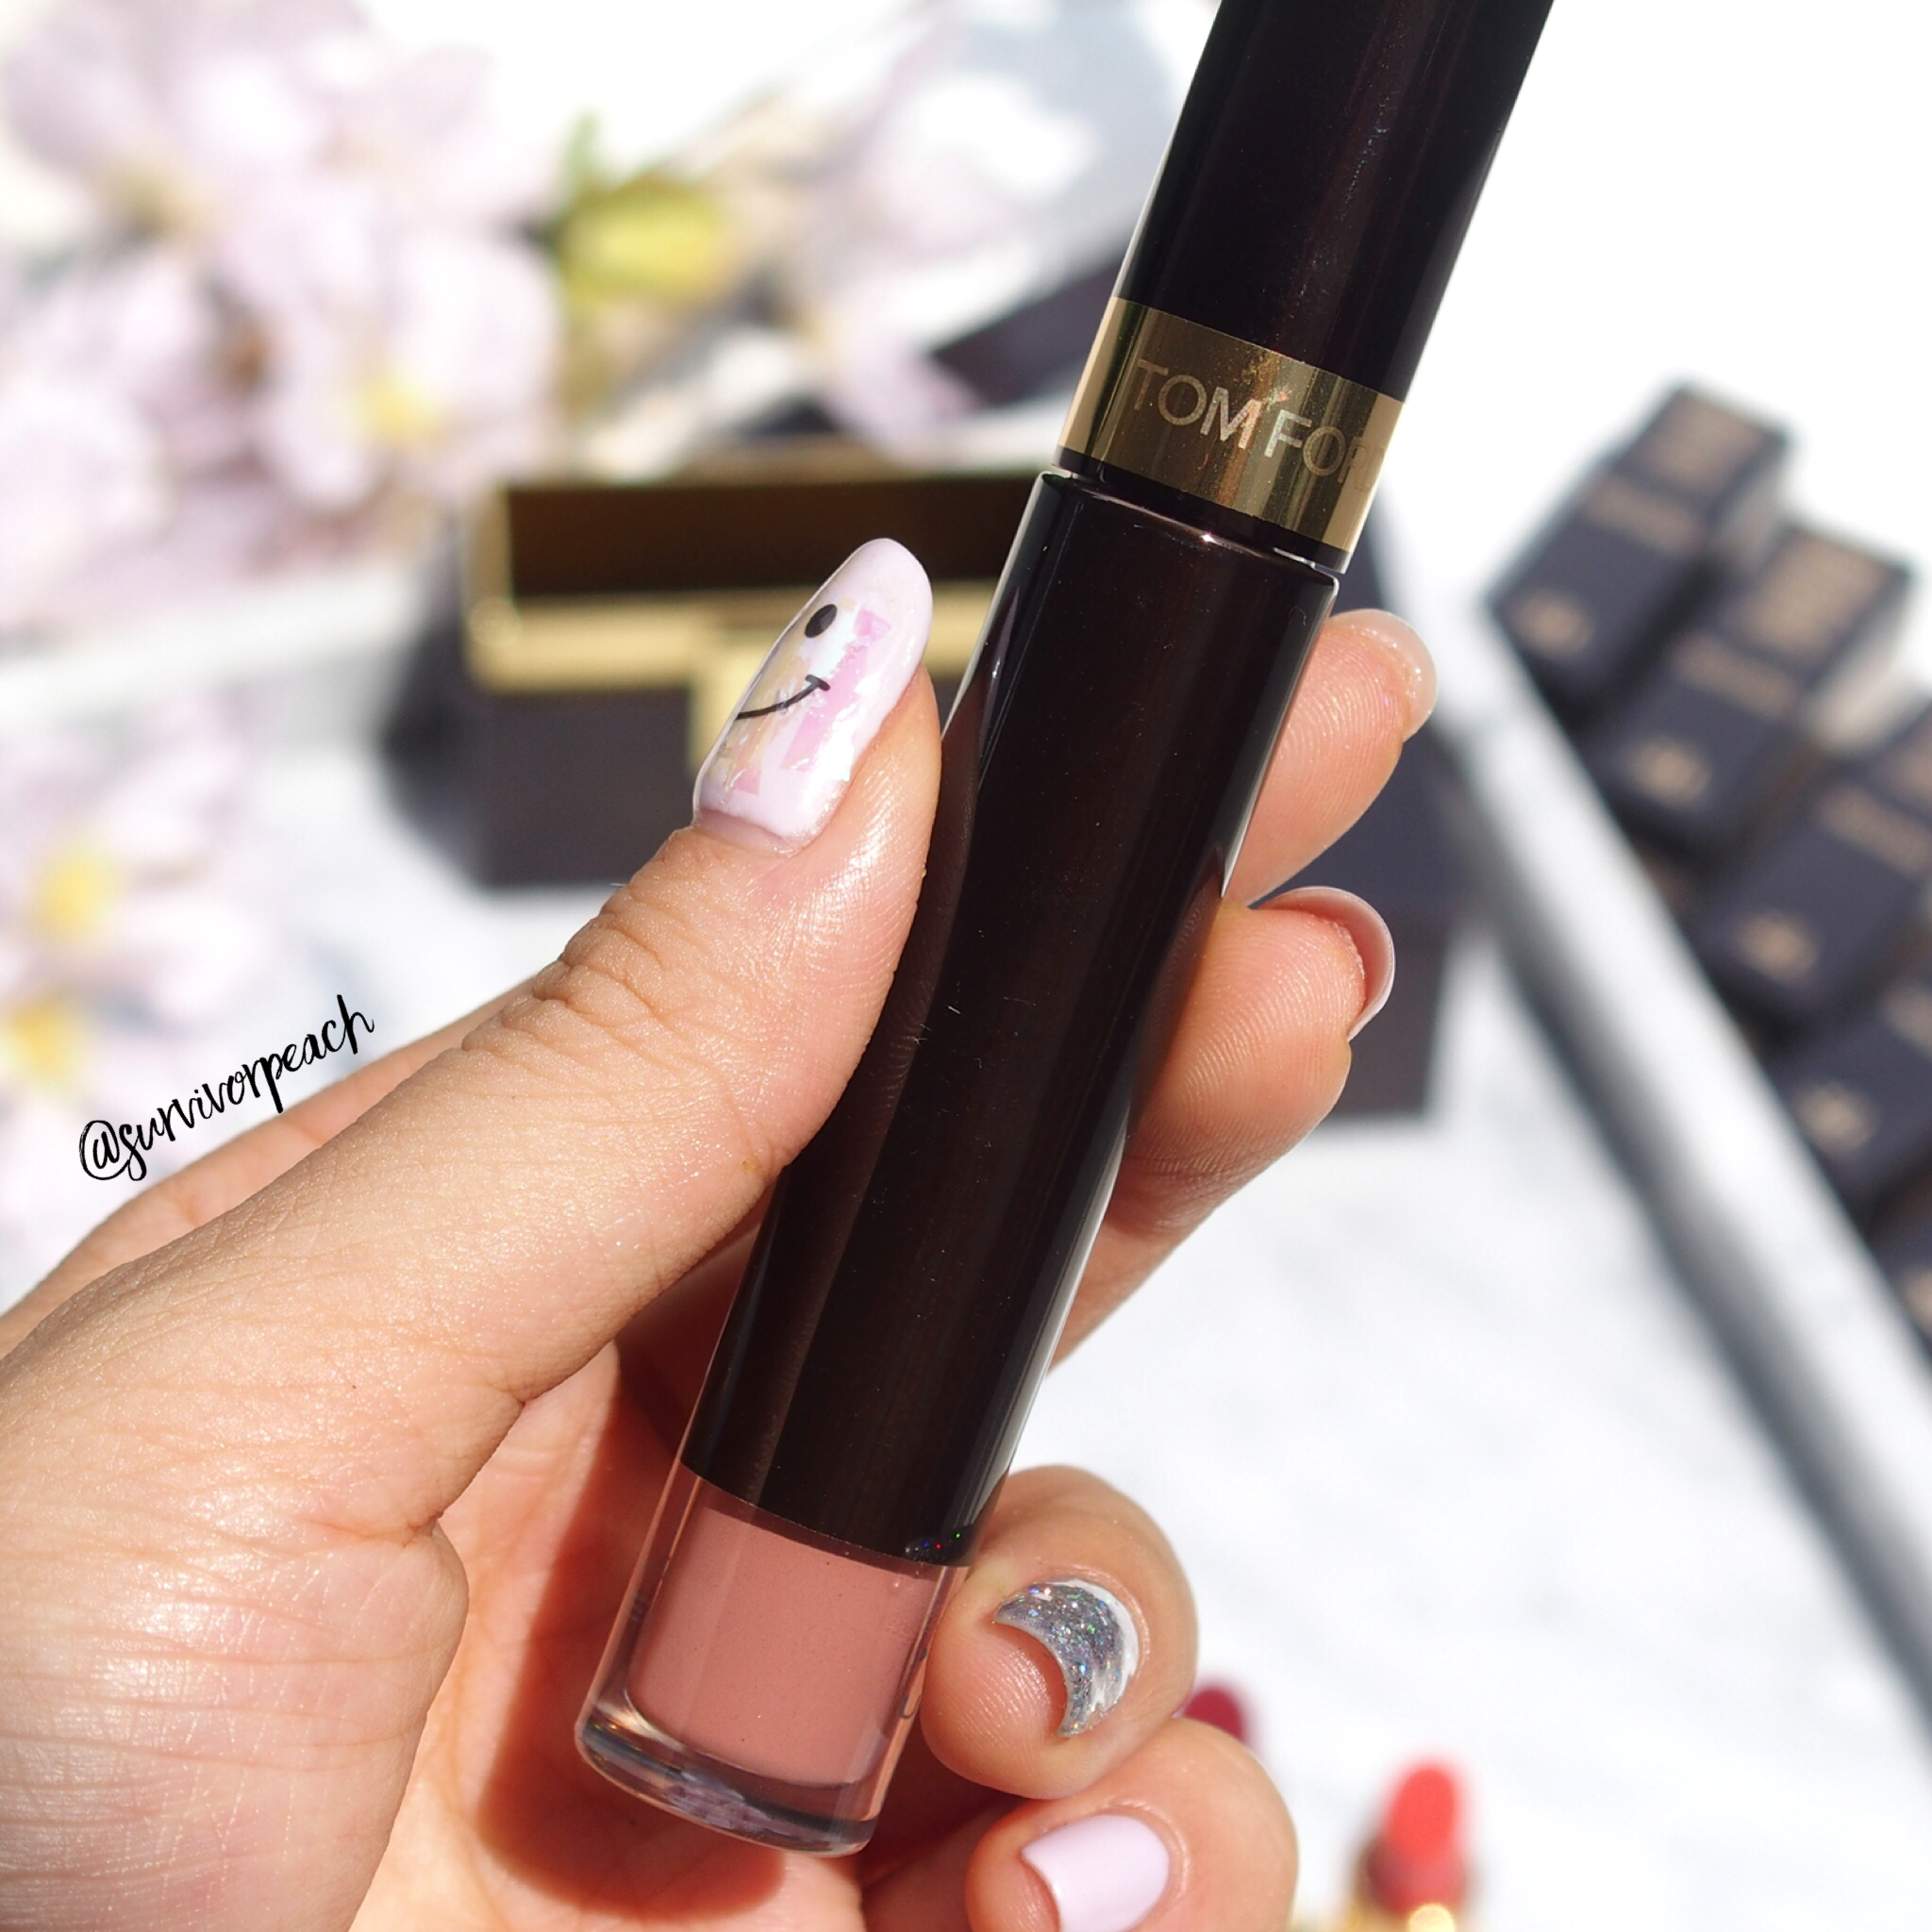 Tomford Lip Lacquer Liquid Matte in shade Universal Appeal